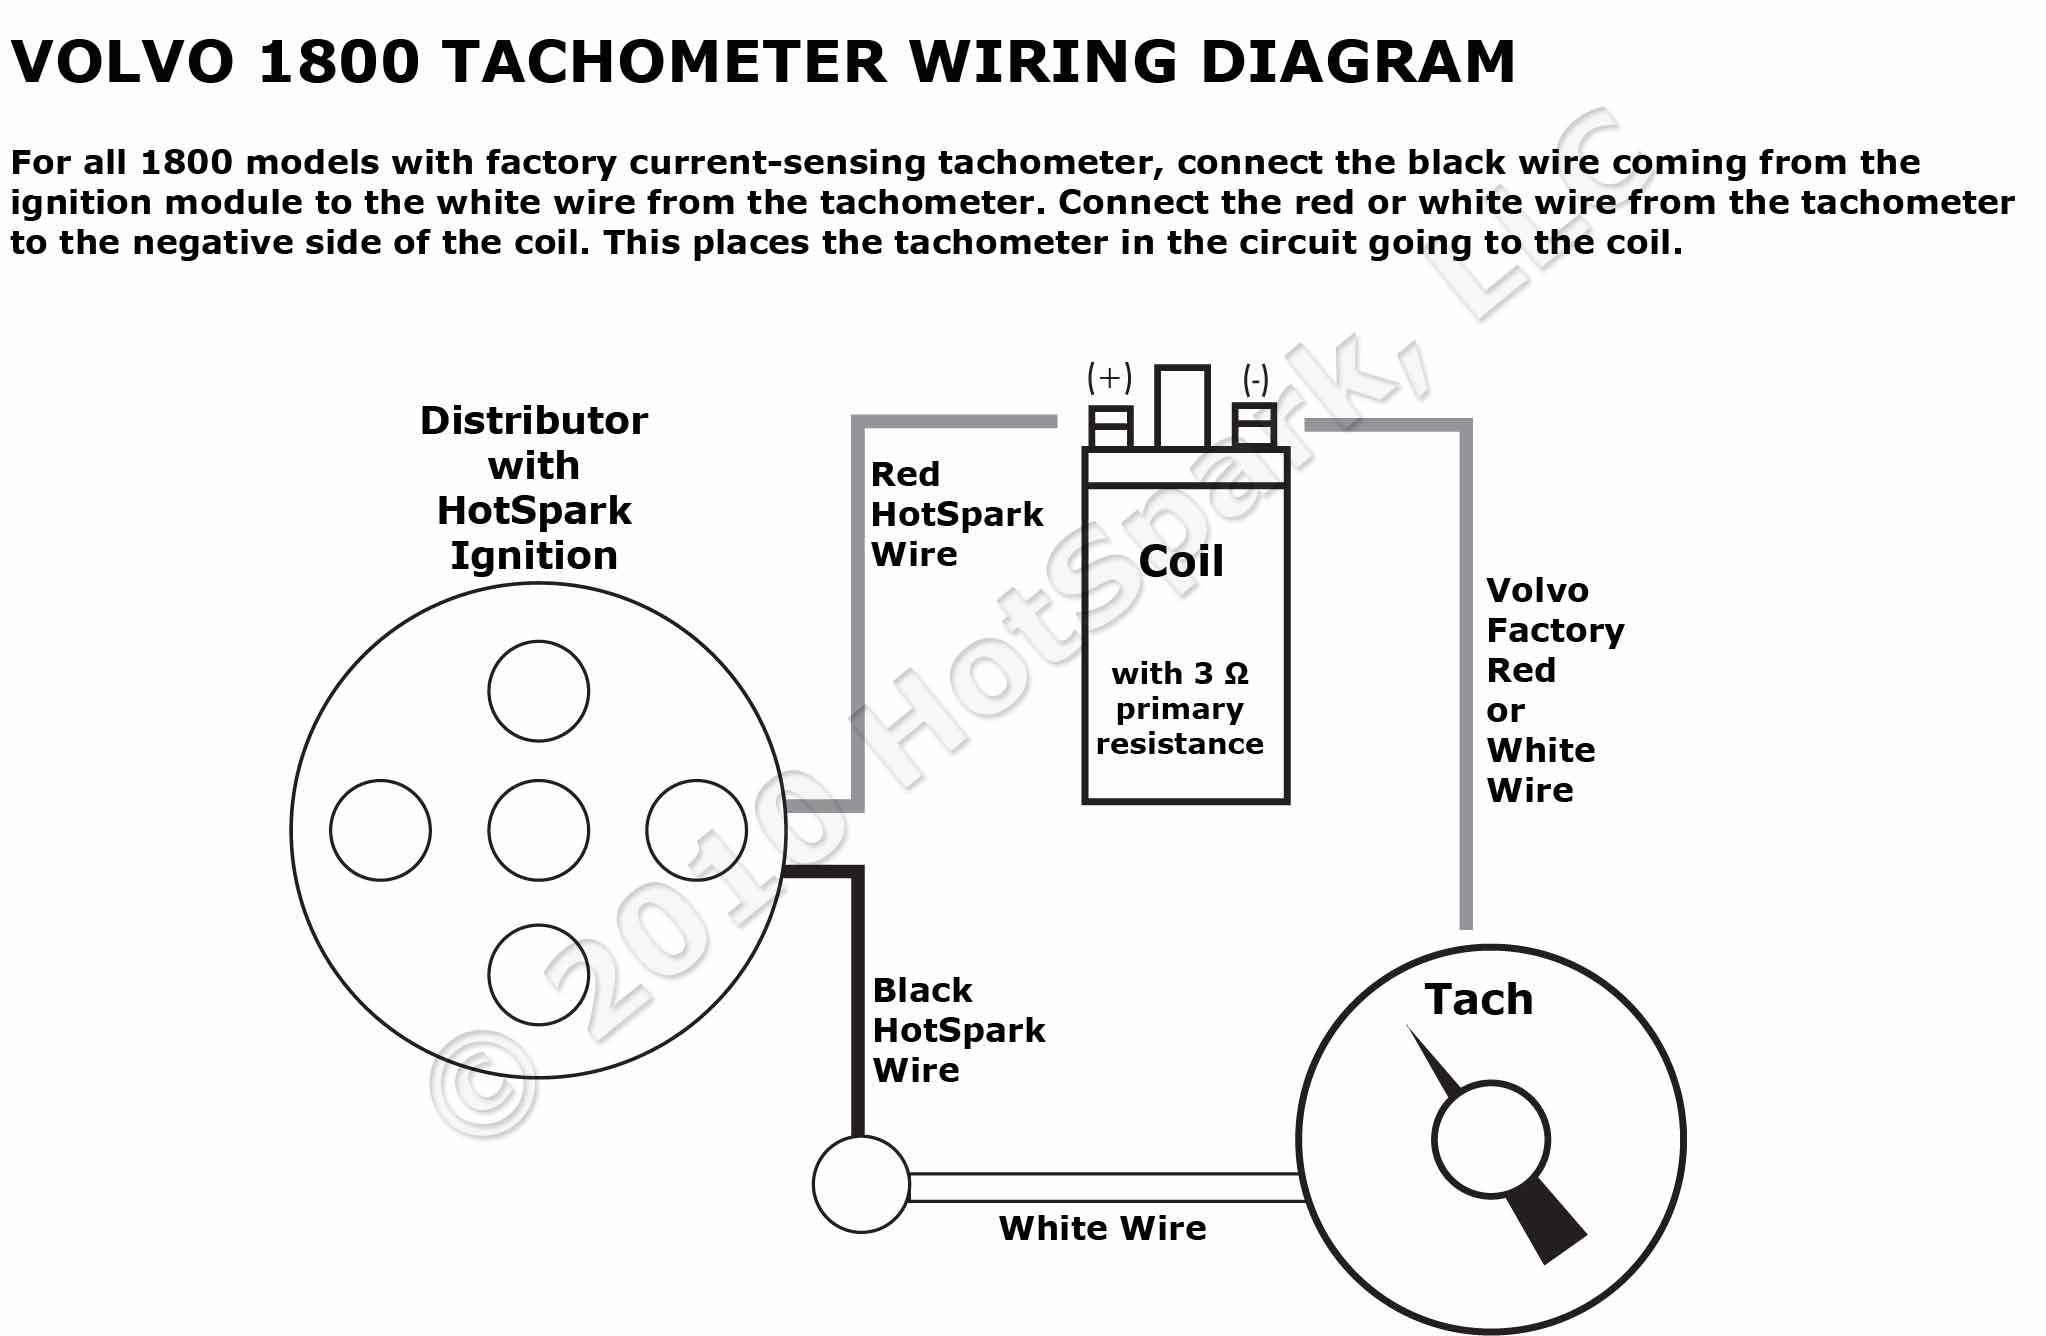 Ford Duraspark 2 Wiring Diagram from www.hot-spark.com